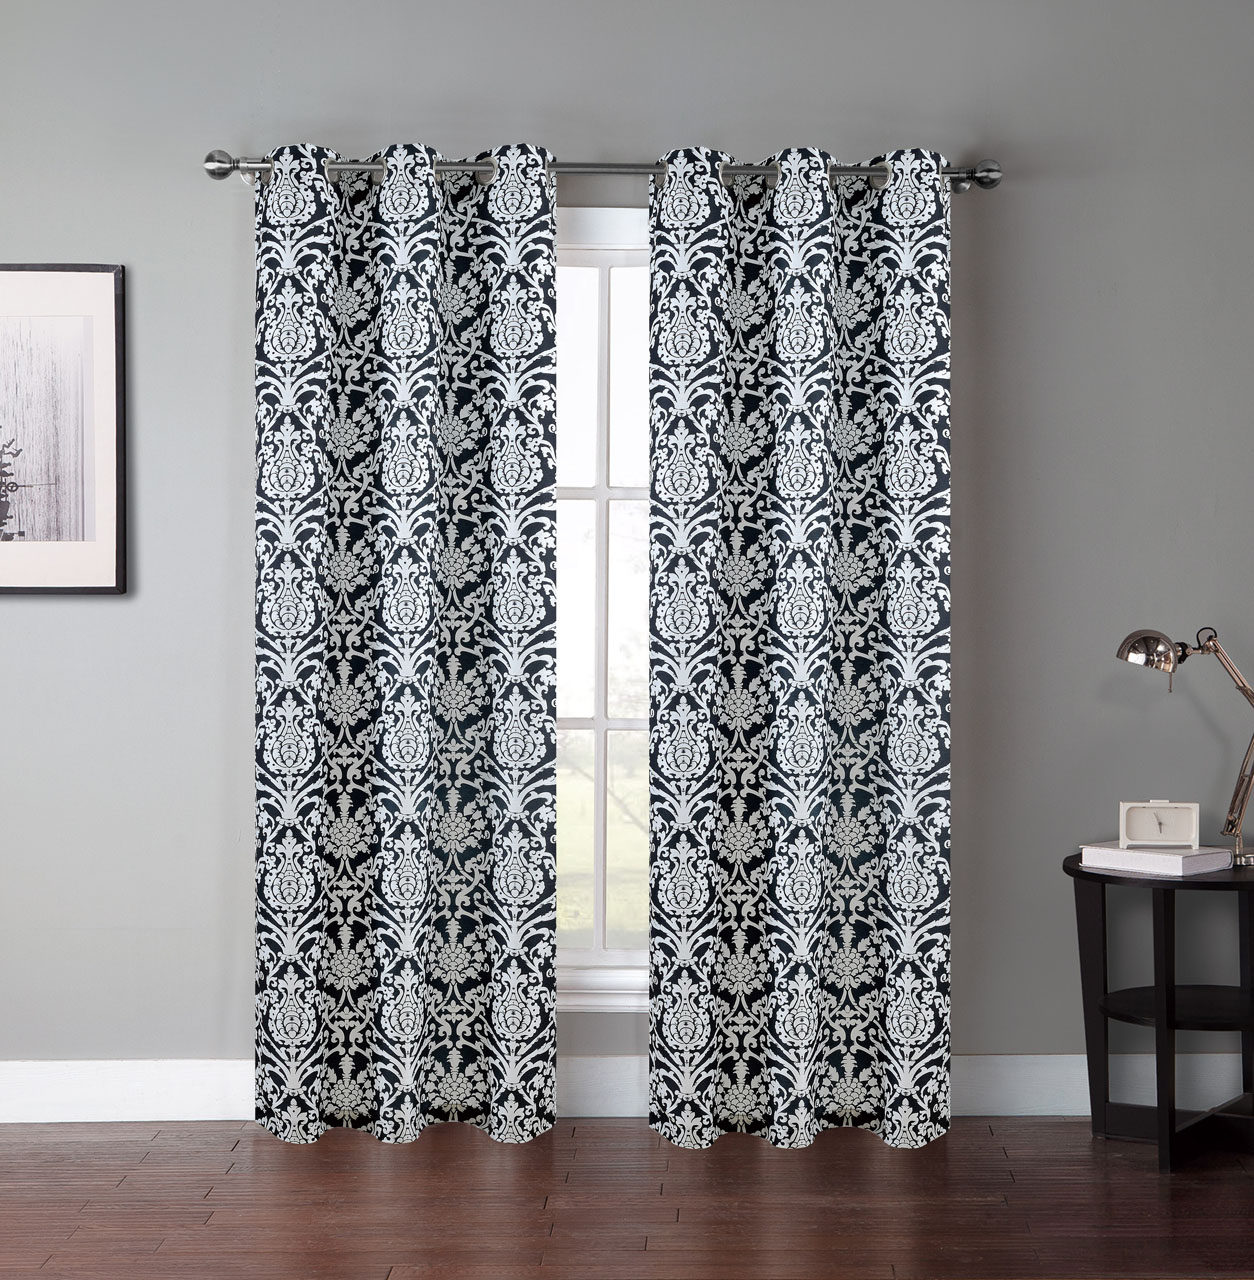 Black and white window curtain - Black And White Window Curtain